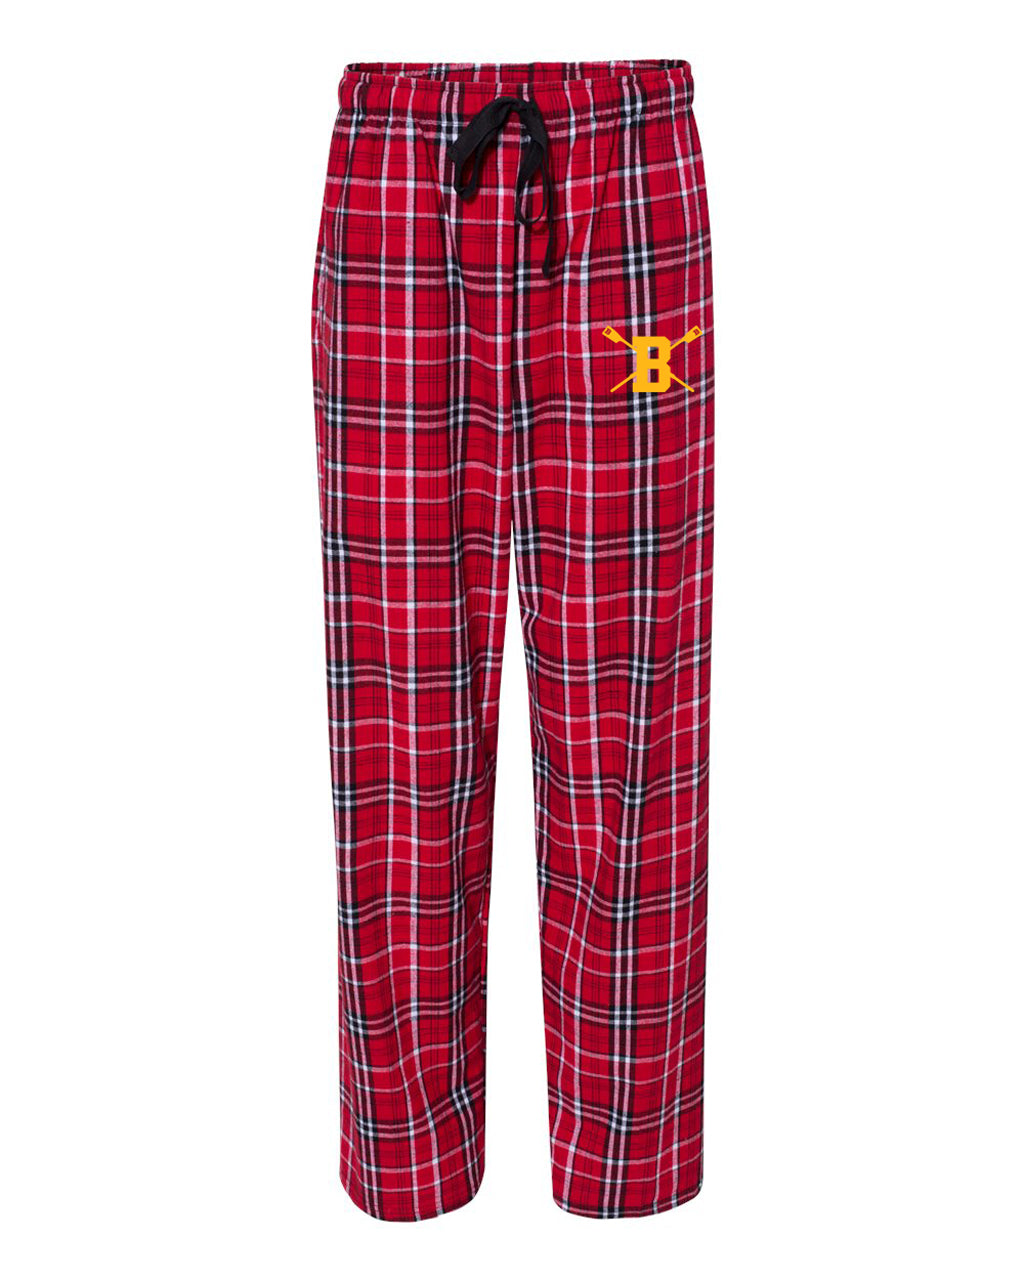 Berkeley High Crew Flannel Pants